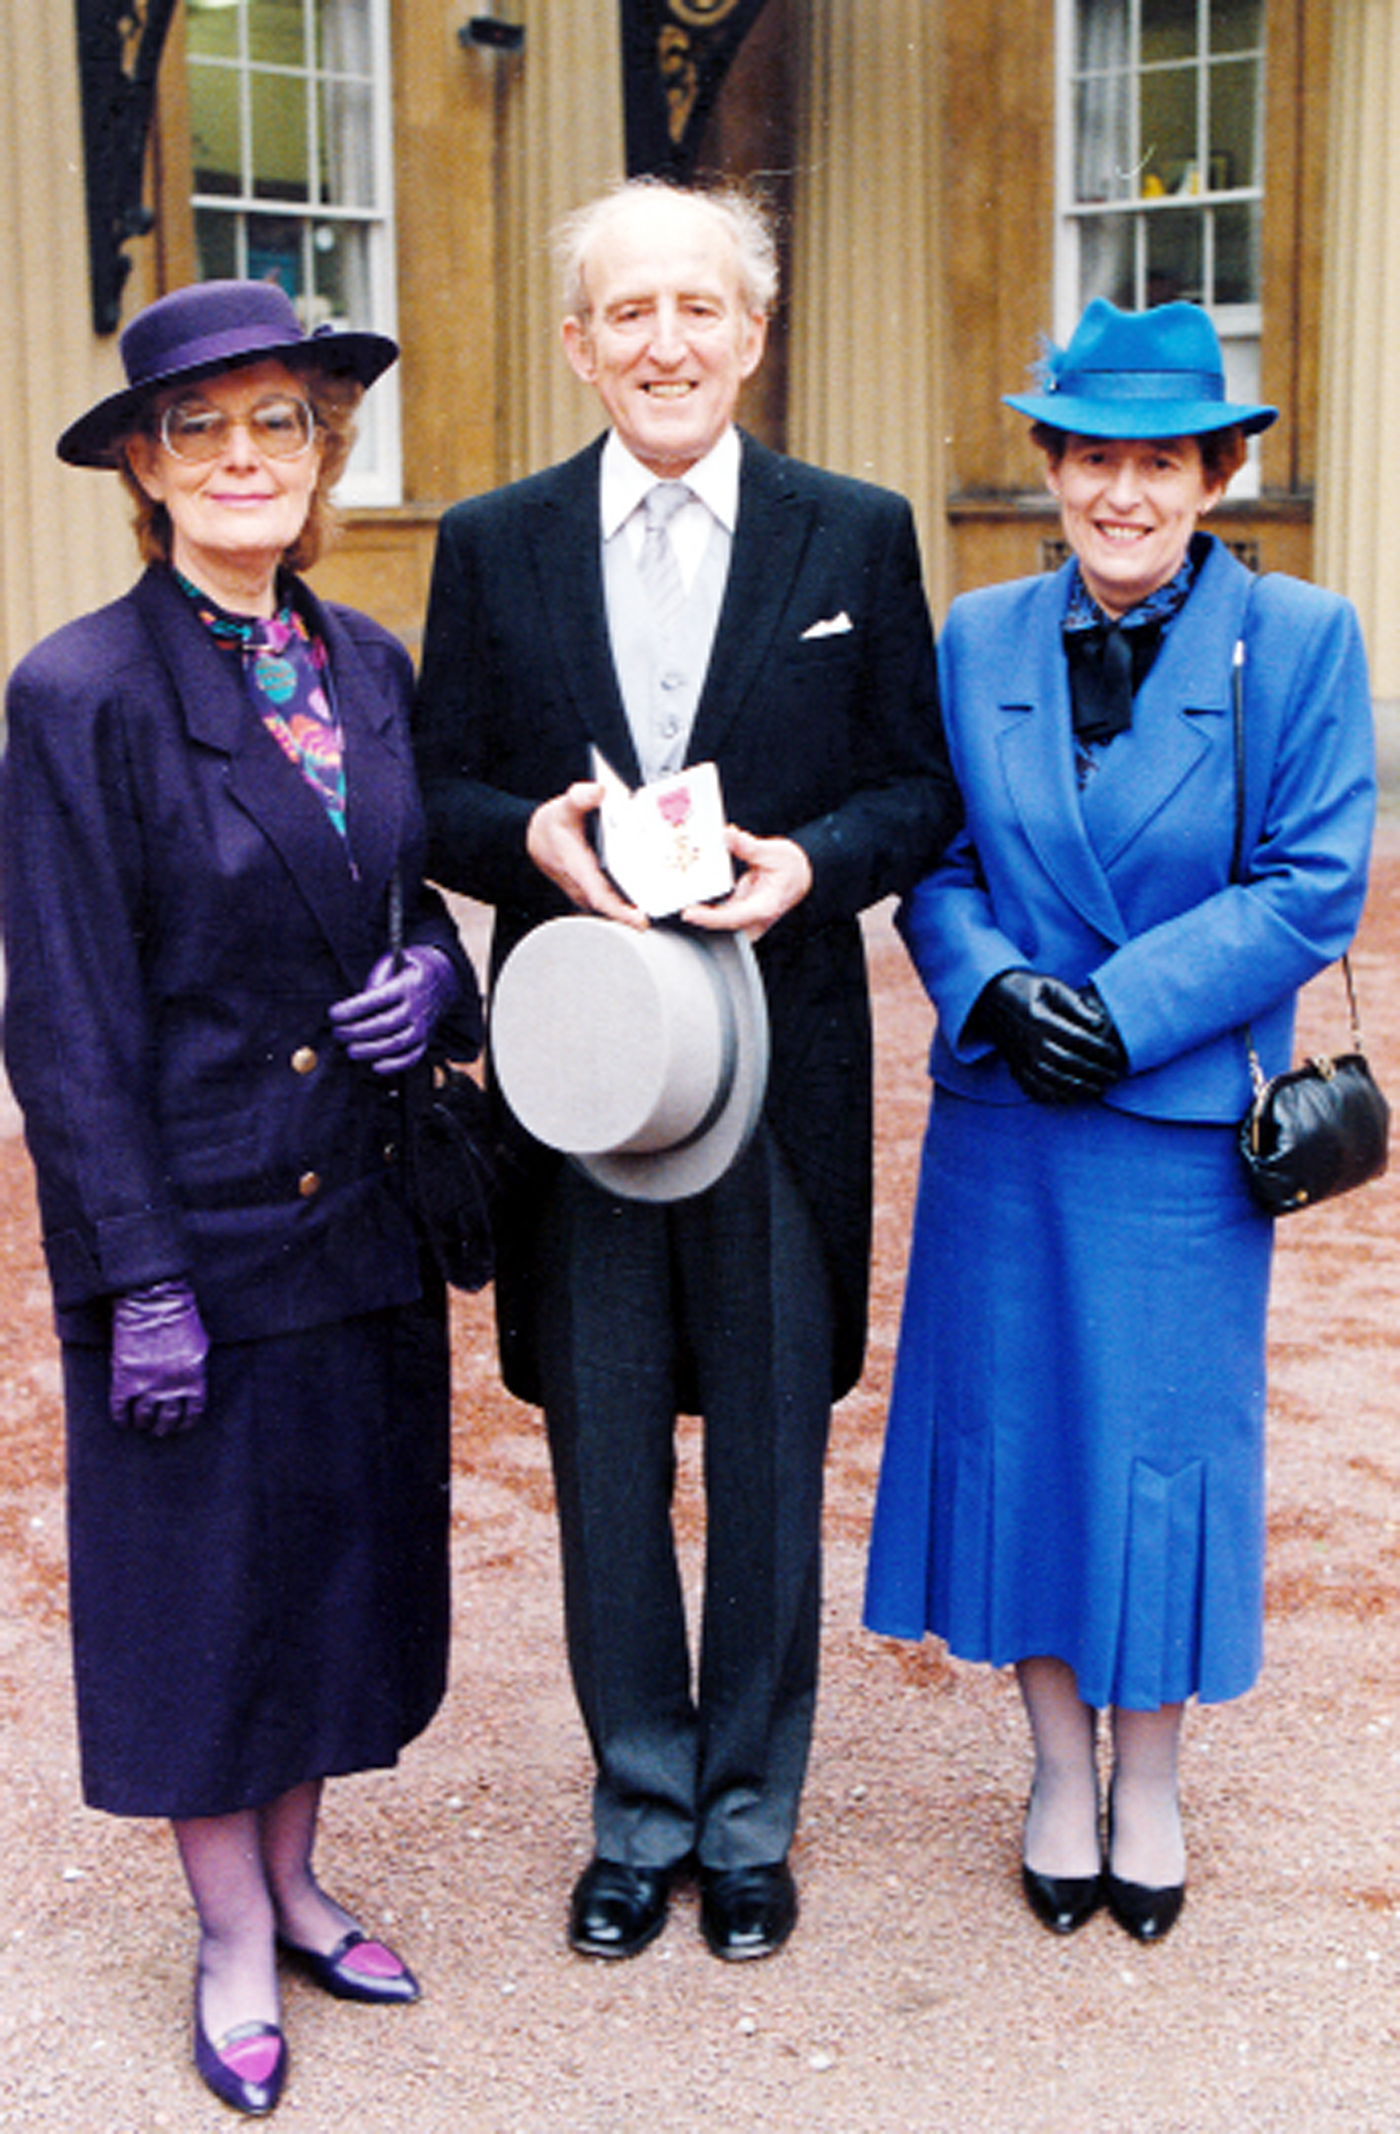 Richard Warburton with his wife Lois, left, and sister Shirley when he received his OBE at Buckingham Palace in 1987